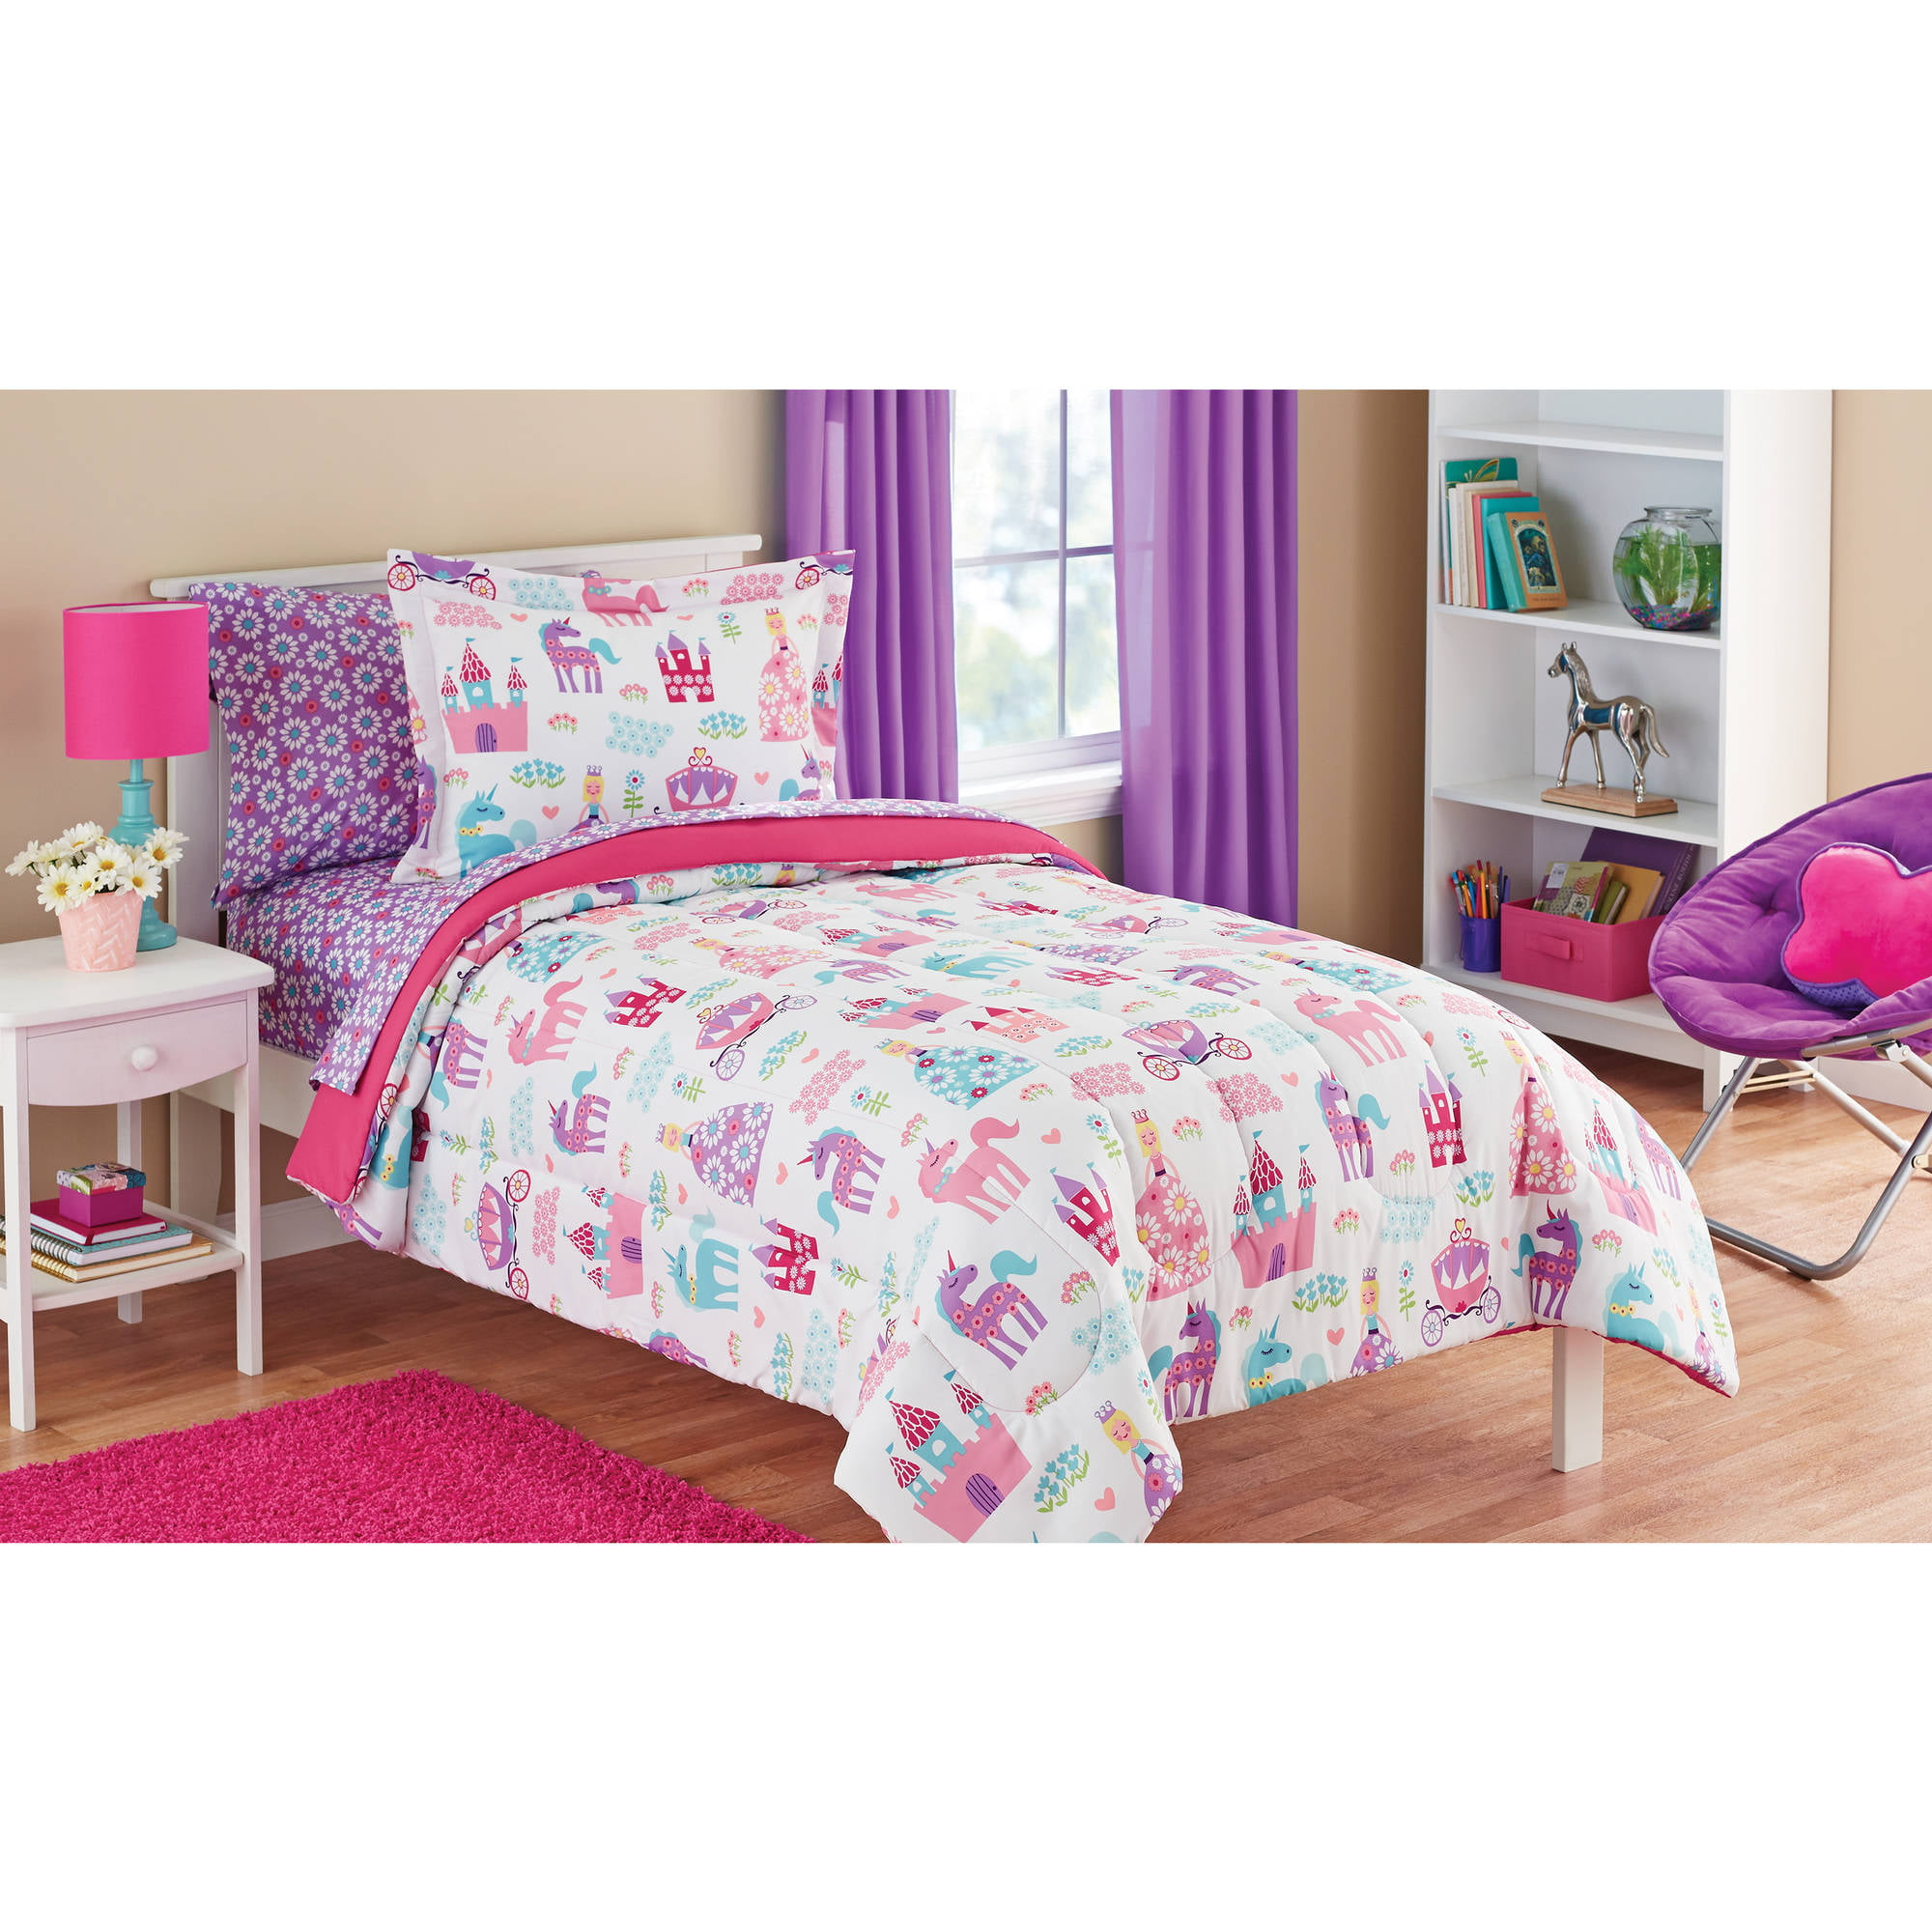 Mainstays Kids Pretty Princess Coordinated Bed in a Bag 8e1d006ca